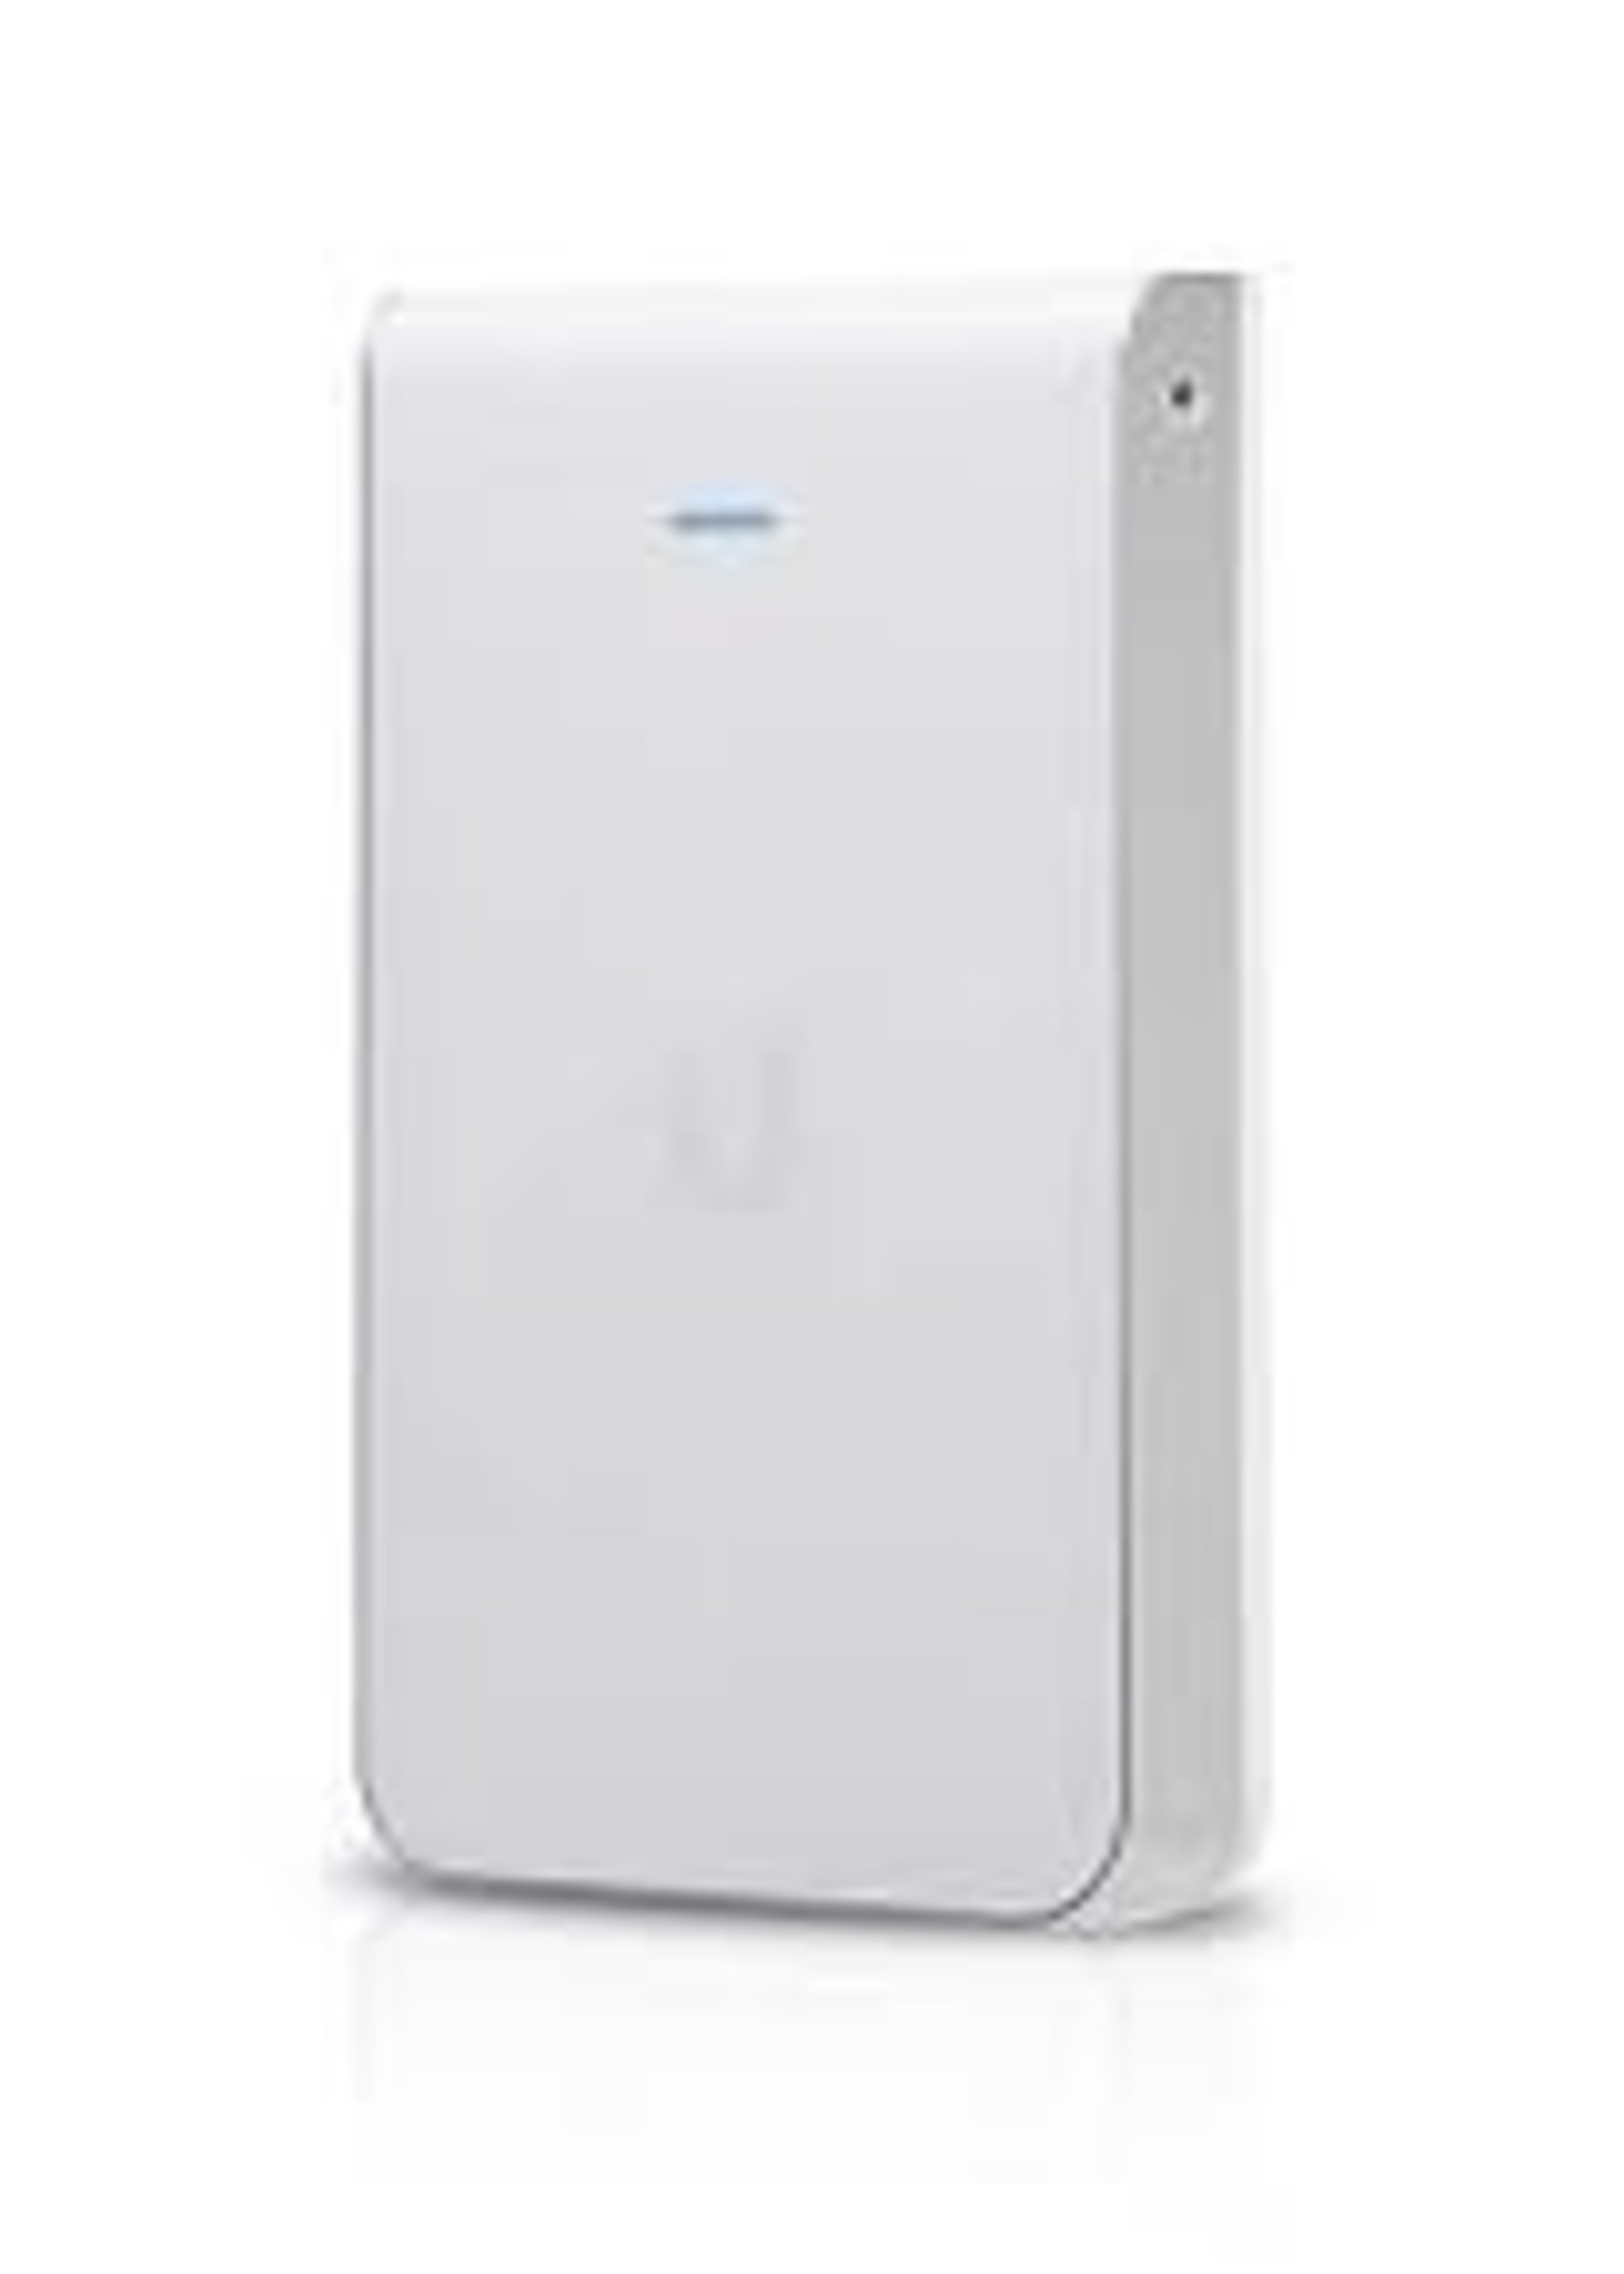 Ubiquiti Ubiquity In-Wall HD Access Point